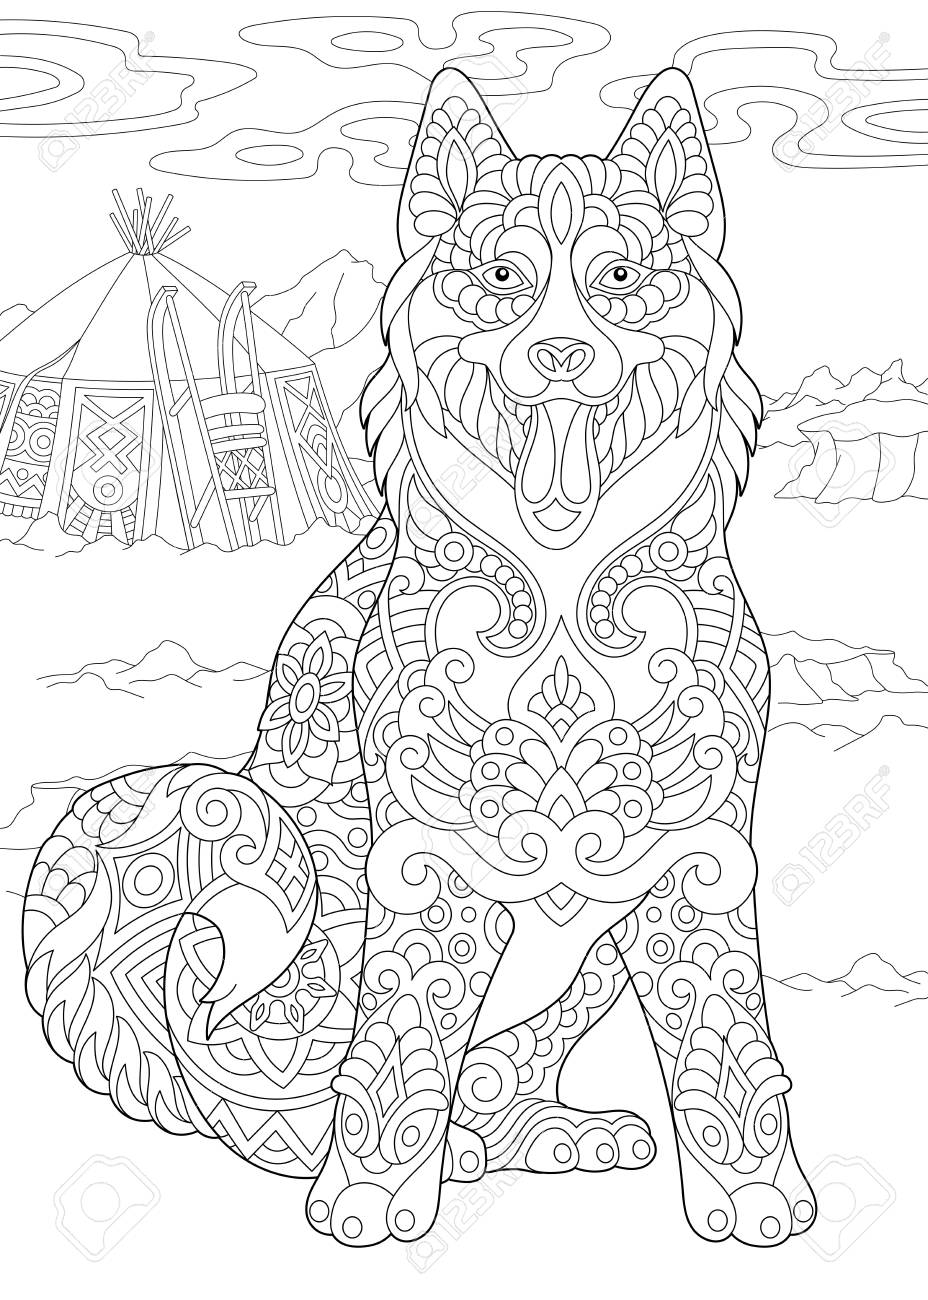 sled dogs coloring pages - Clip Art Library | 1300x928